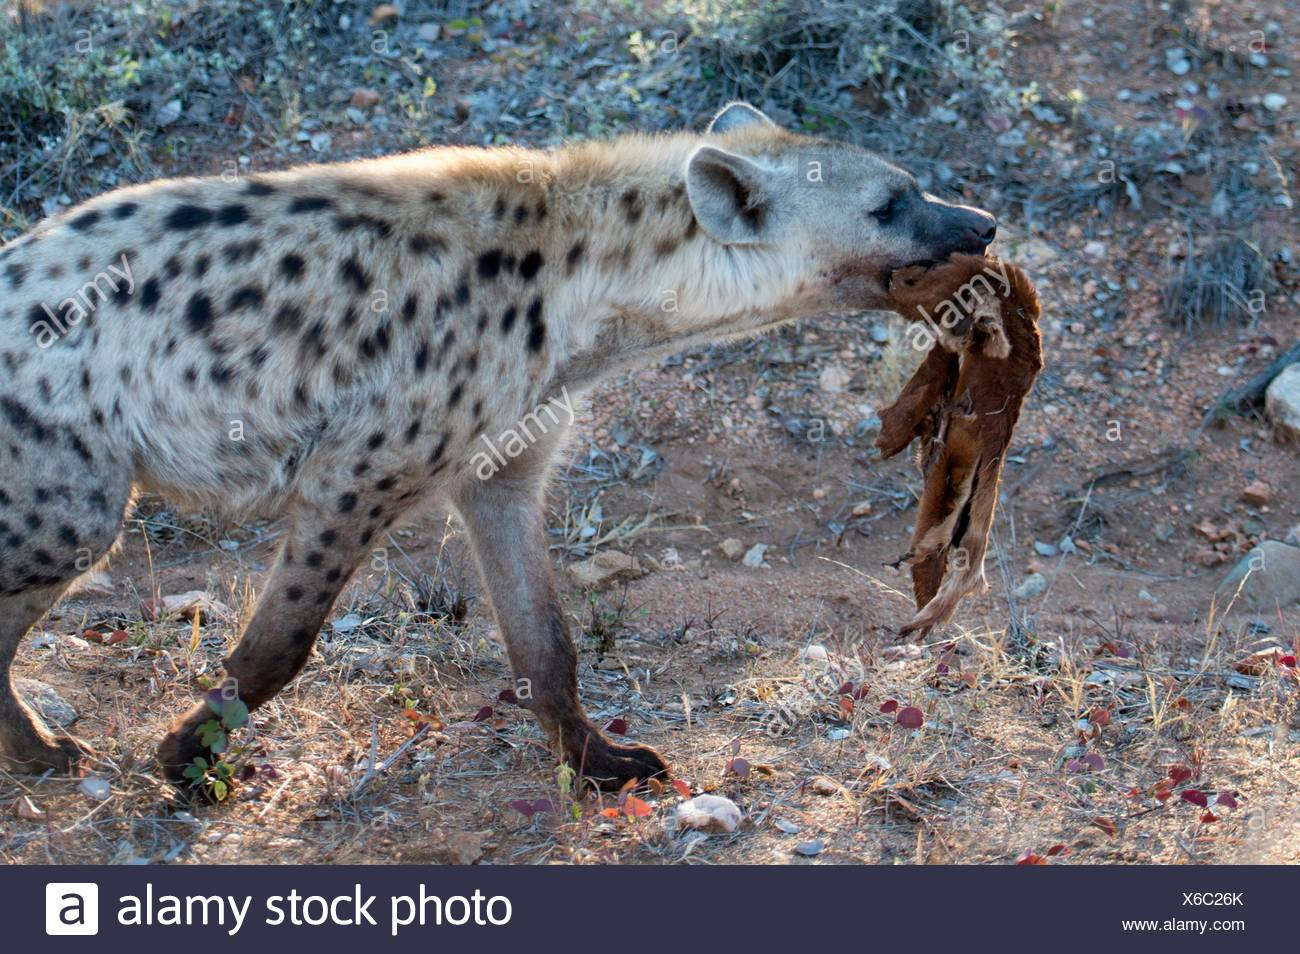 Spotted Hyena (Crocuta crocuta) aka Laughing Hyena with skin of antelope, Kruger National Park, Transvaal, South Africa. - Stock Image